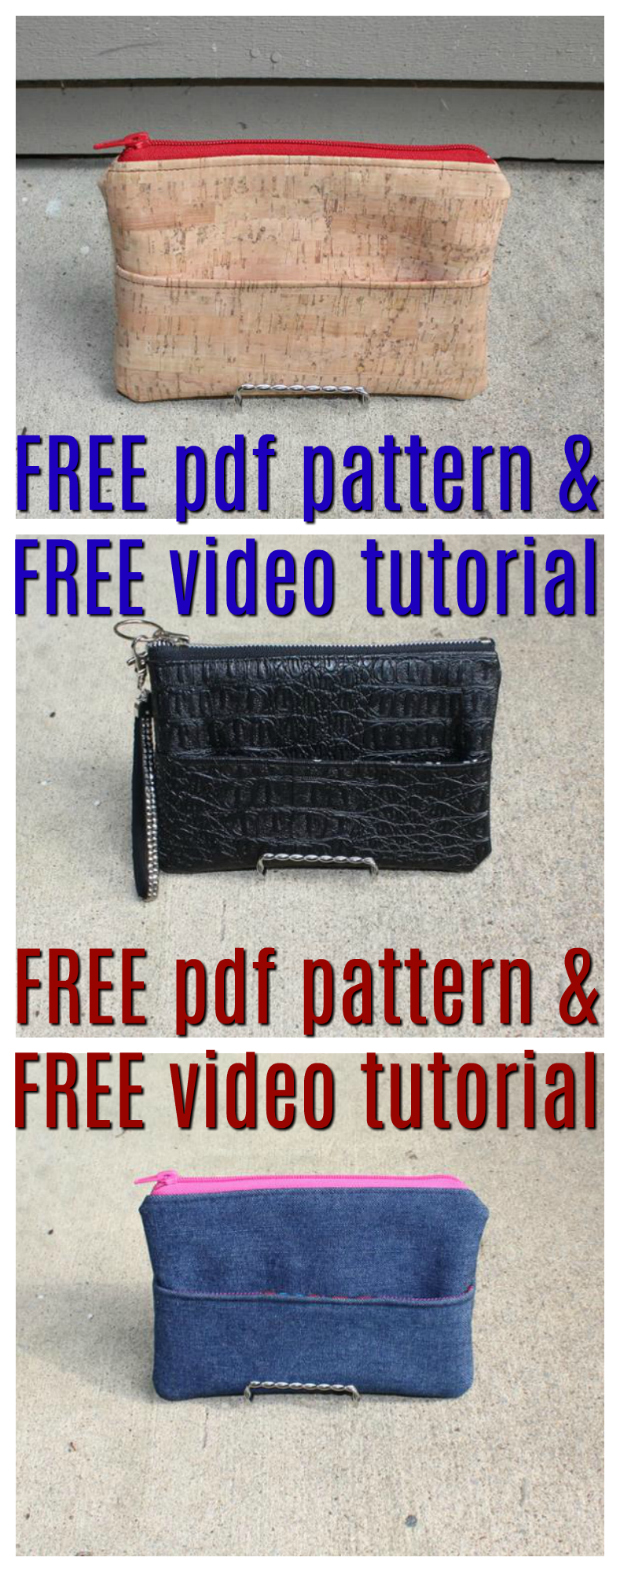 Here is another FREE pdf pattern for a great little Zipper Pouch named the Erin Pouch, however, with this one you also get a FREE step by step video tutorial. This pattern features a front pocket with a magnetic snap closure and a top zipper. And the design of this pattern allows the beginner sewer to make the Erin Pouch out of a number of different fabrics such as cotton cloth, leather, vinyl, cork or denim.